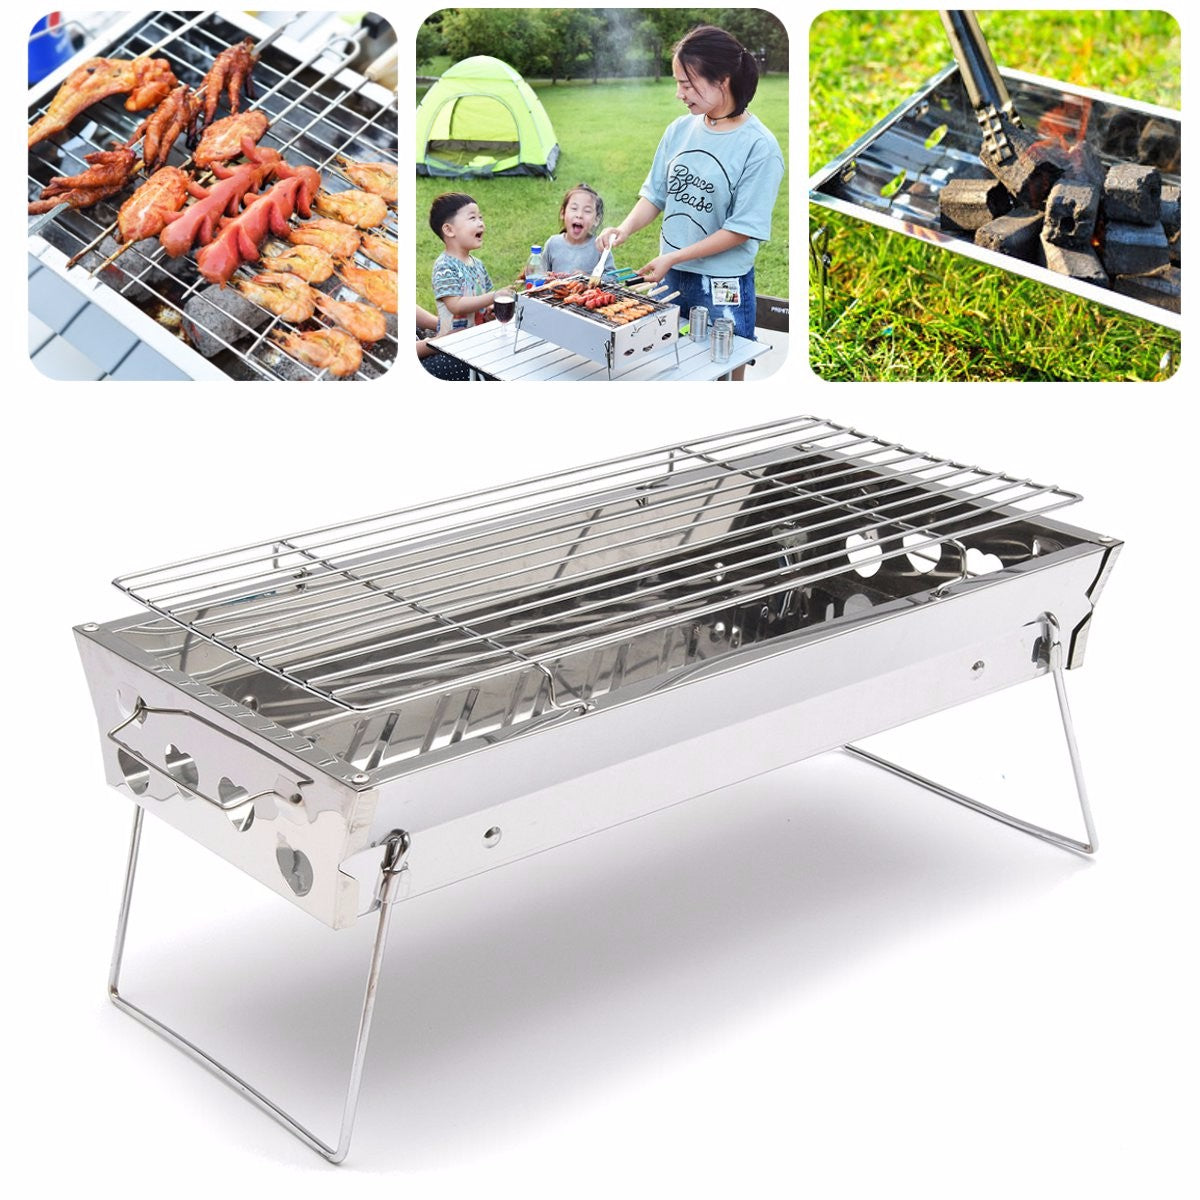 Stainless Steel Portable Outdooors Camping Table Top Barbecue Grill